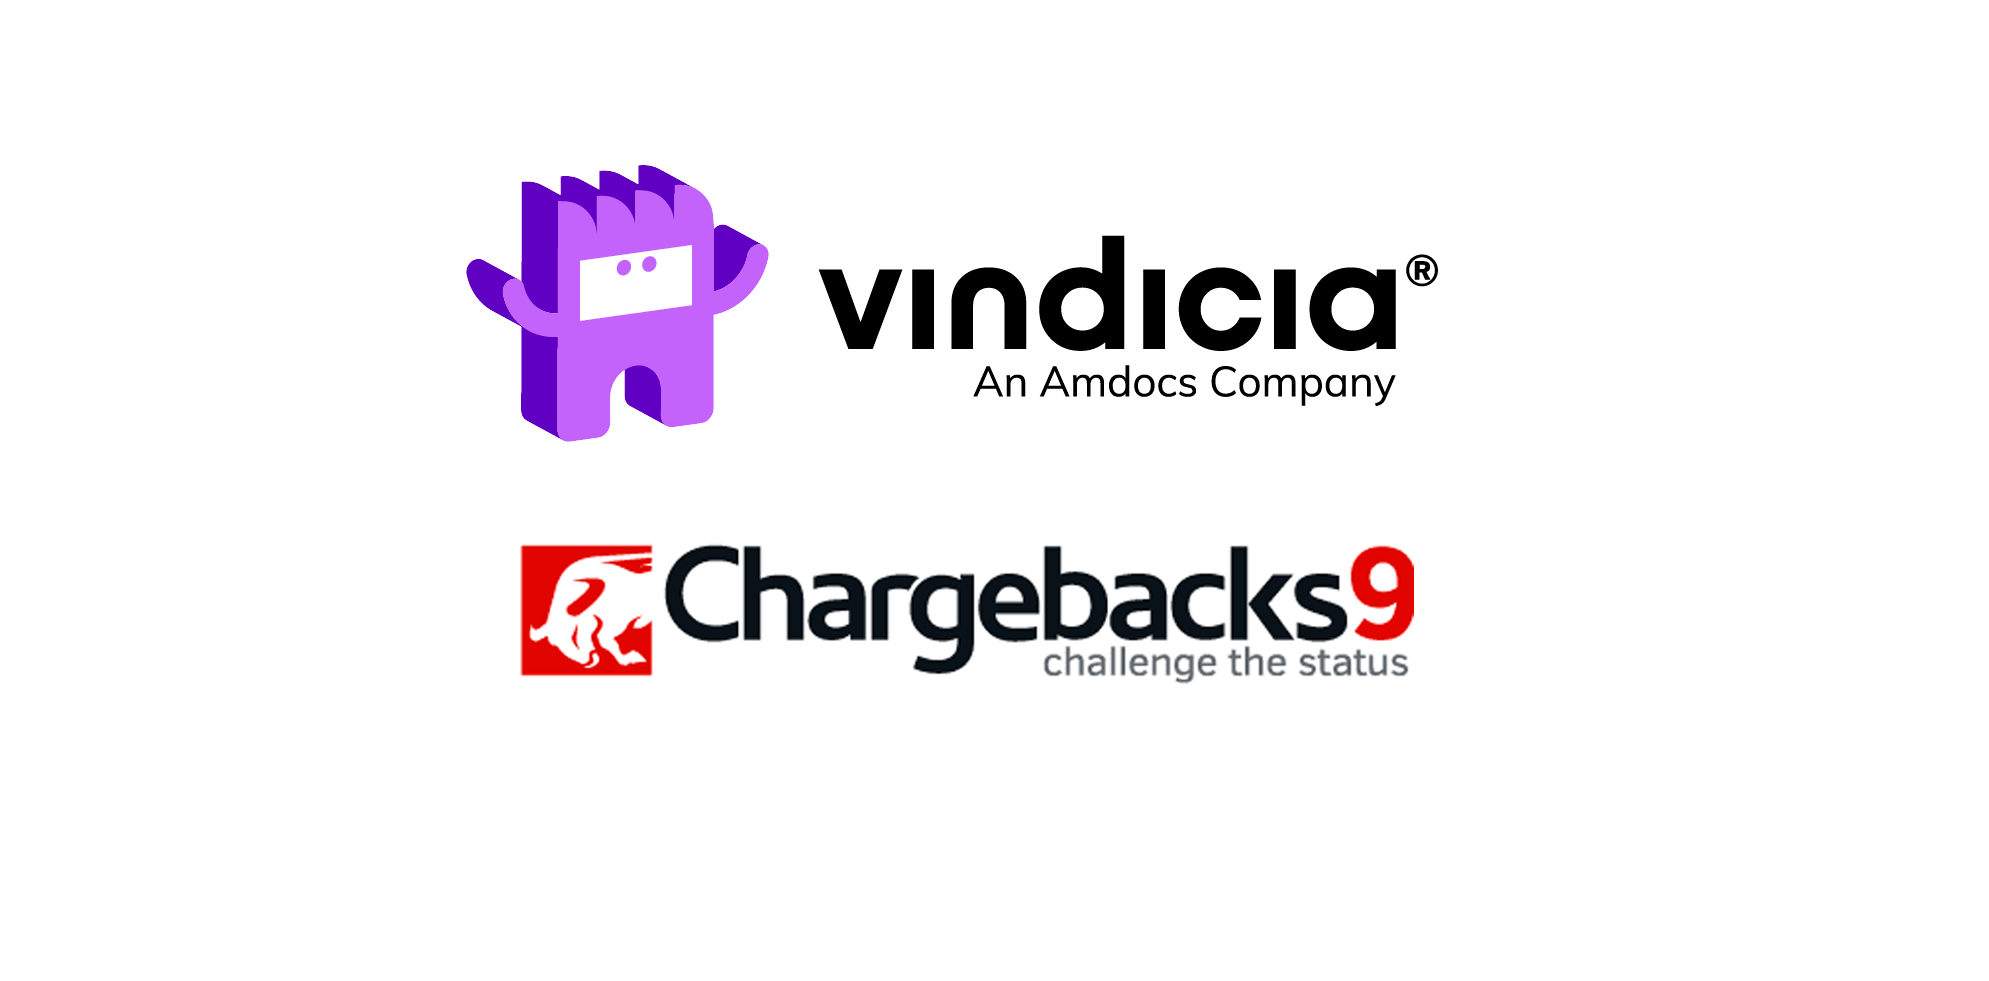 Vindicia and Chargebacks911 Сollaborate to Thwart Friendly Fraud in Growing Subscription Economy